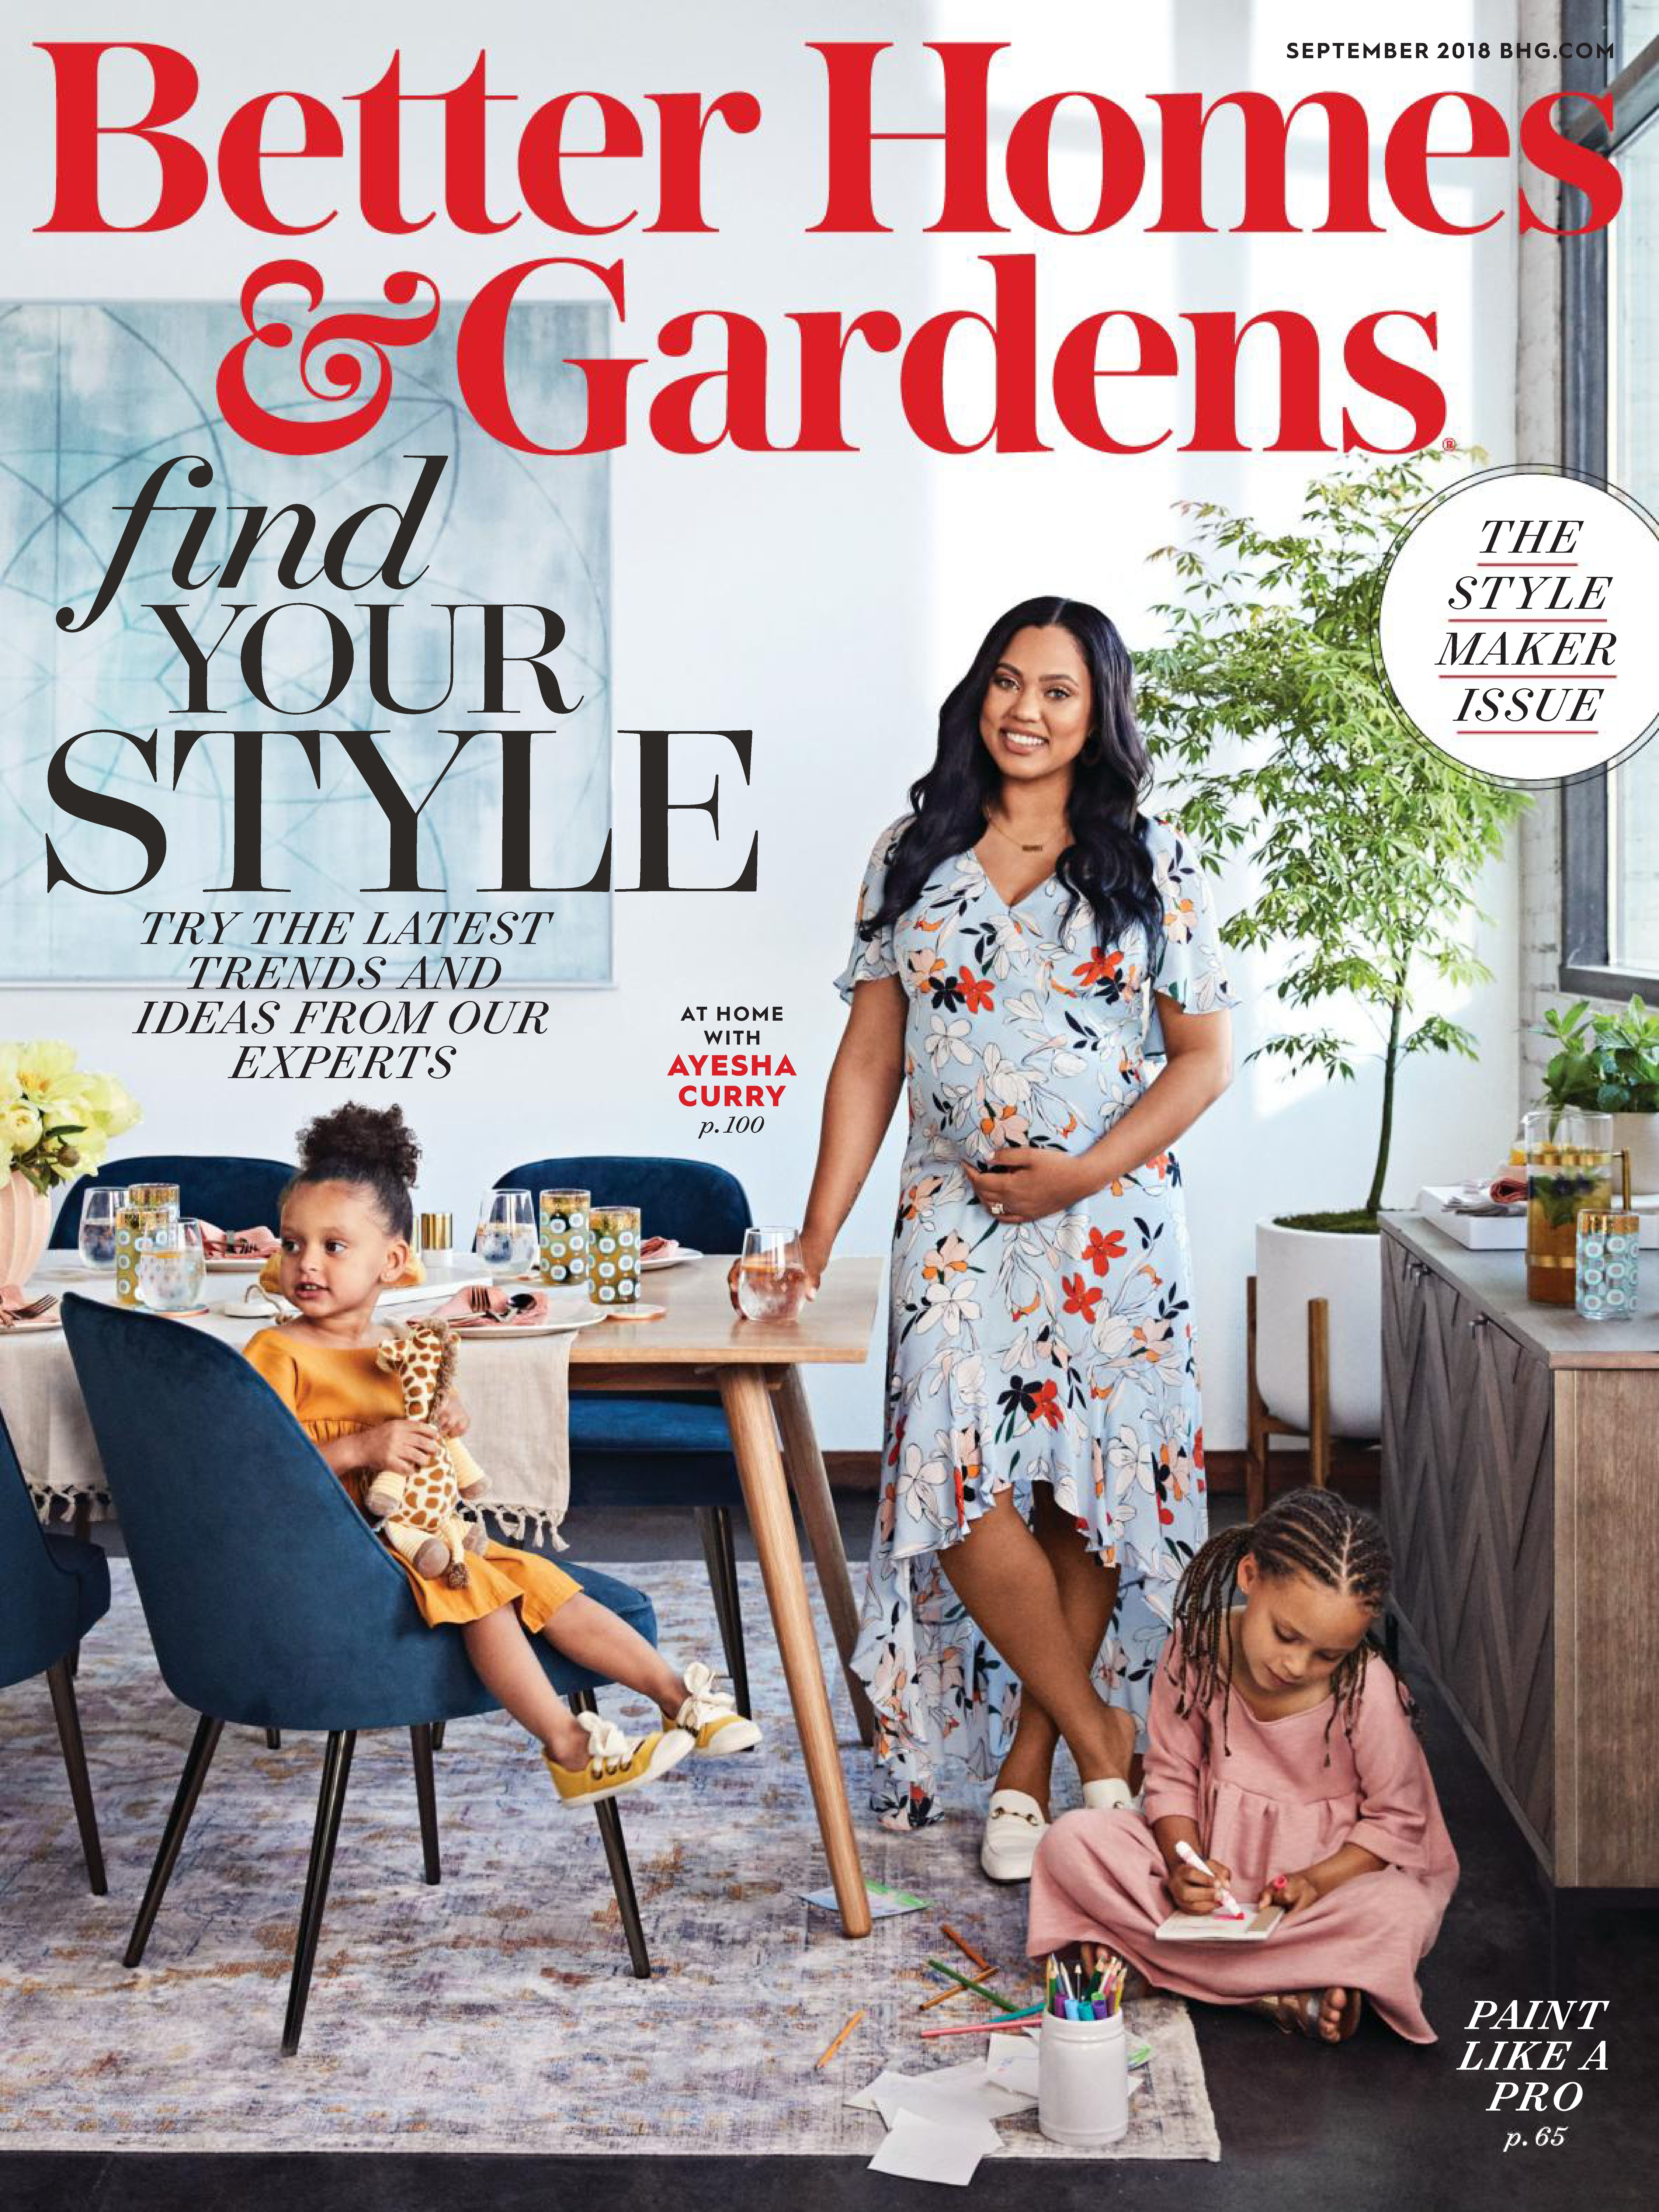 Superieur Better Homes And Gardens Digital Magazine